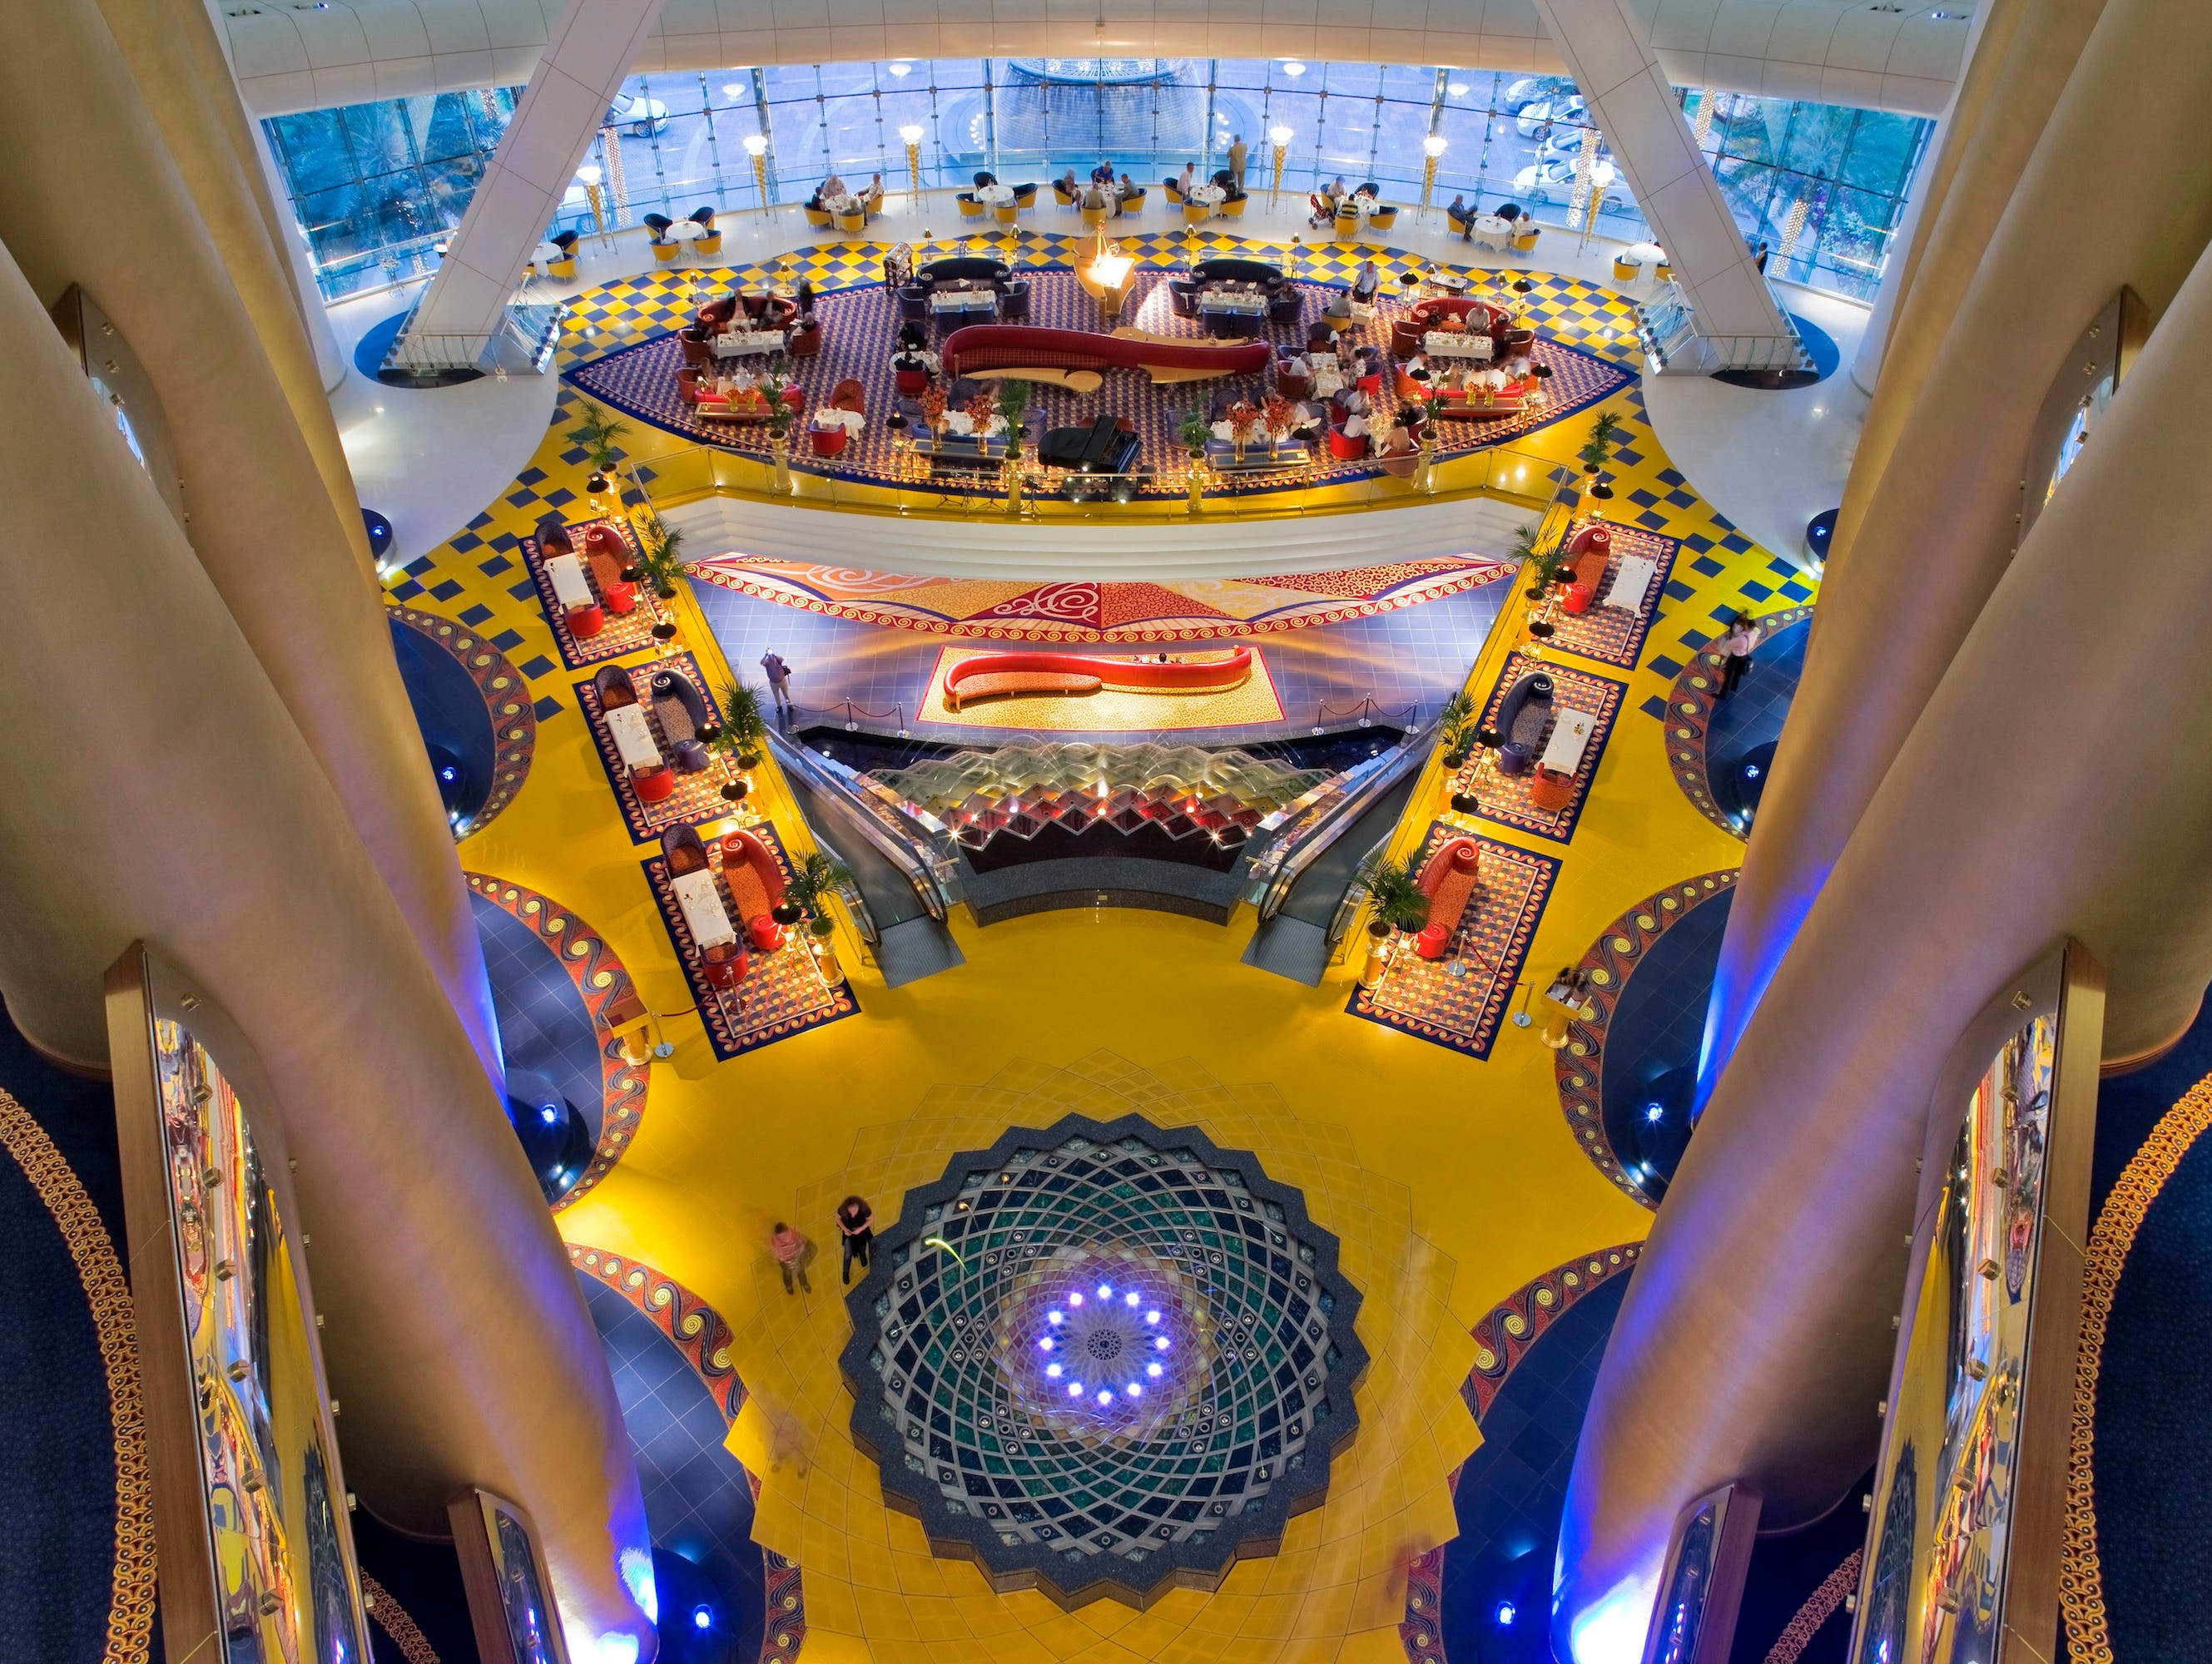 The Burj Al Arab in Dubai makes a splash not only from the skyline silhouette, but also with the colorful and eclectic lobby design.